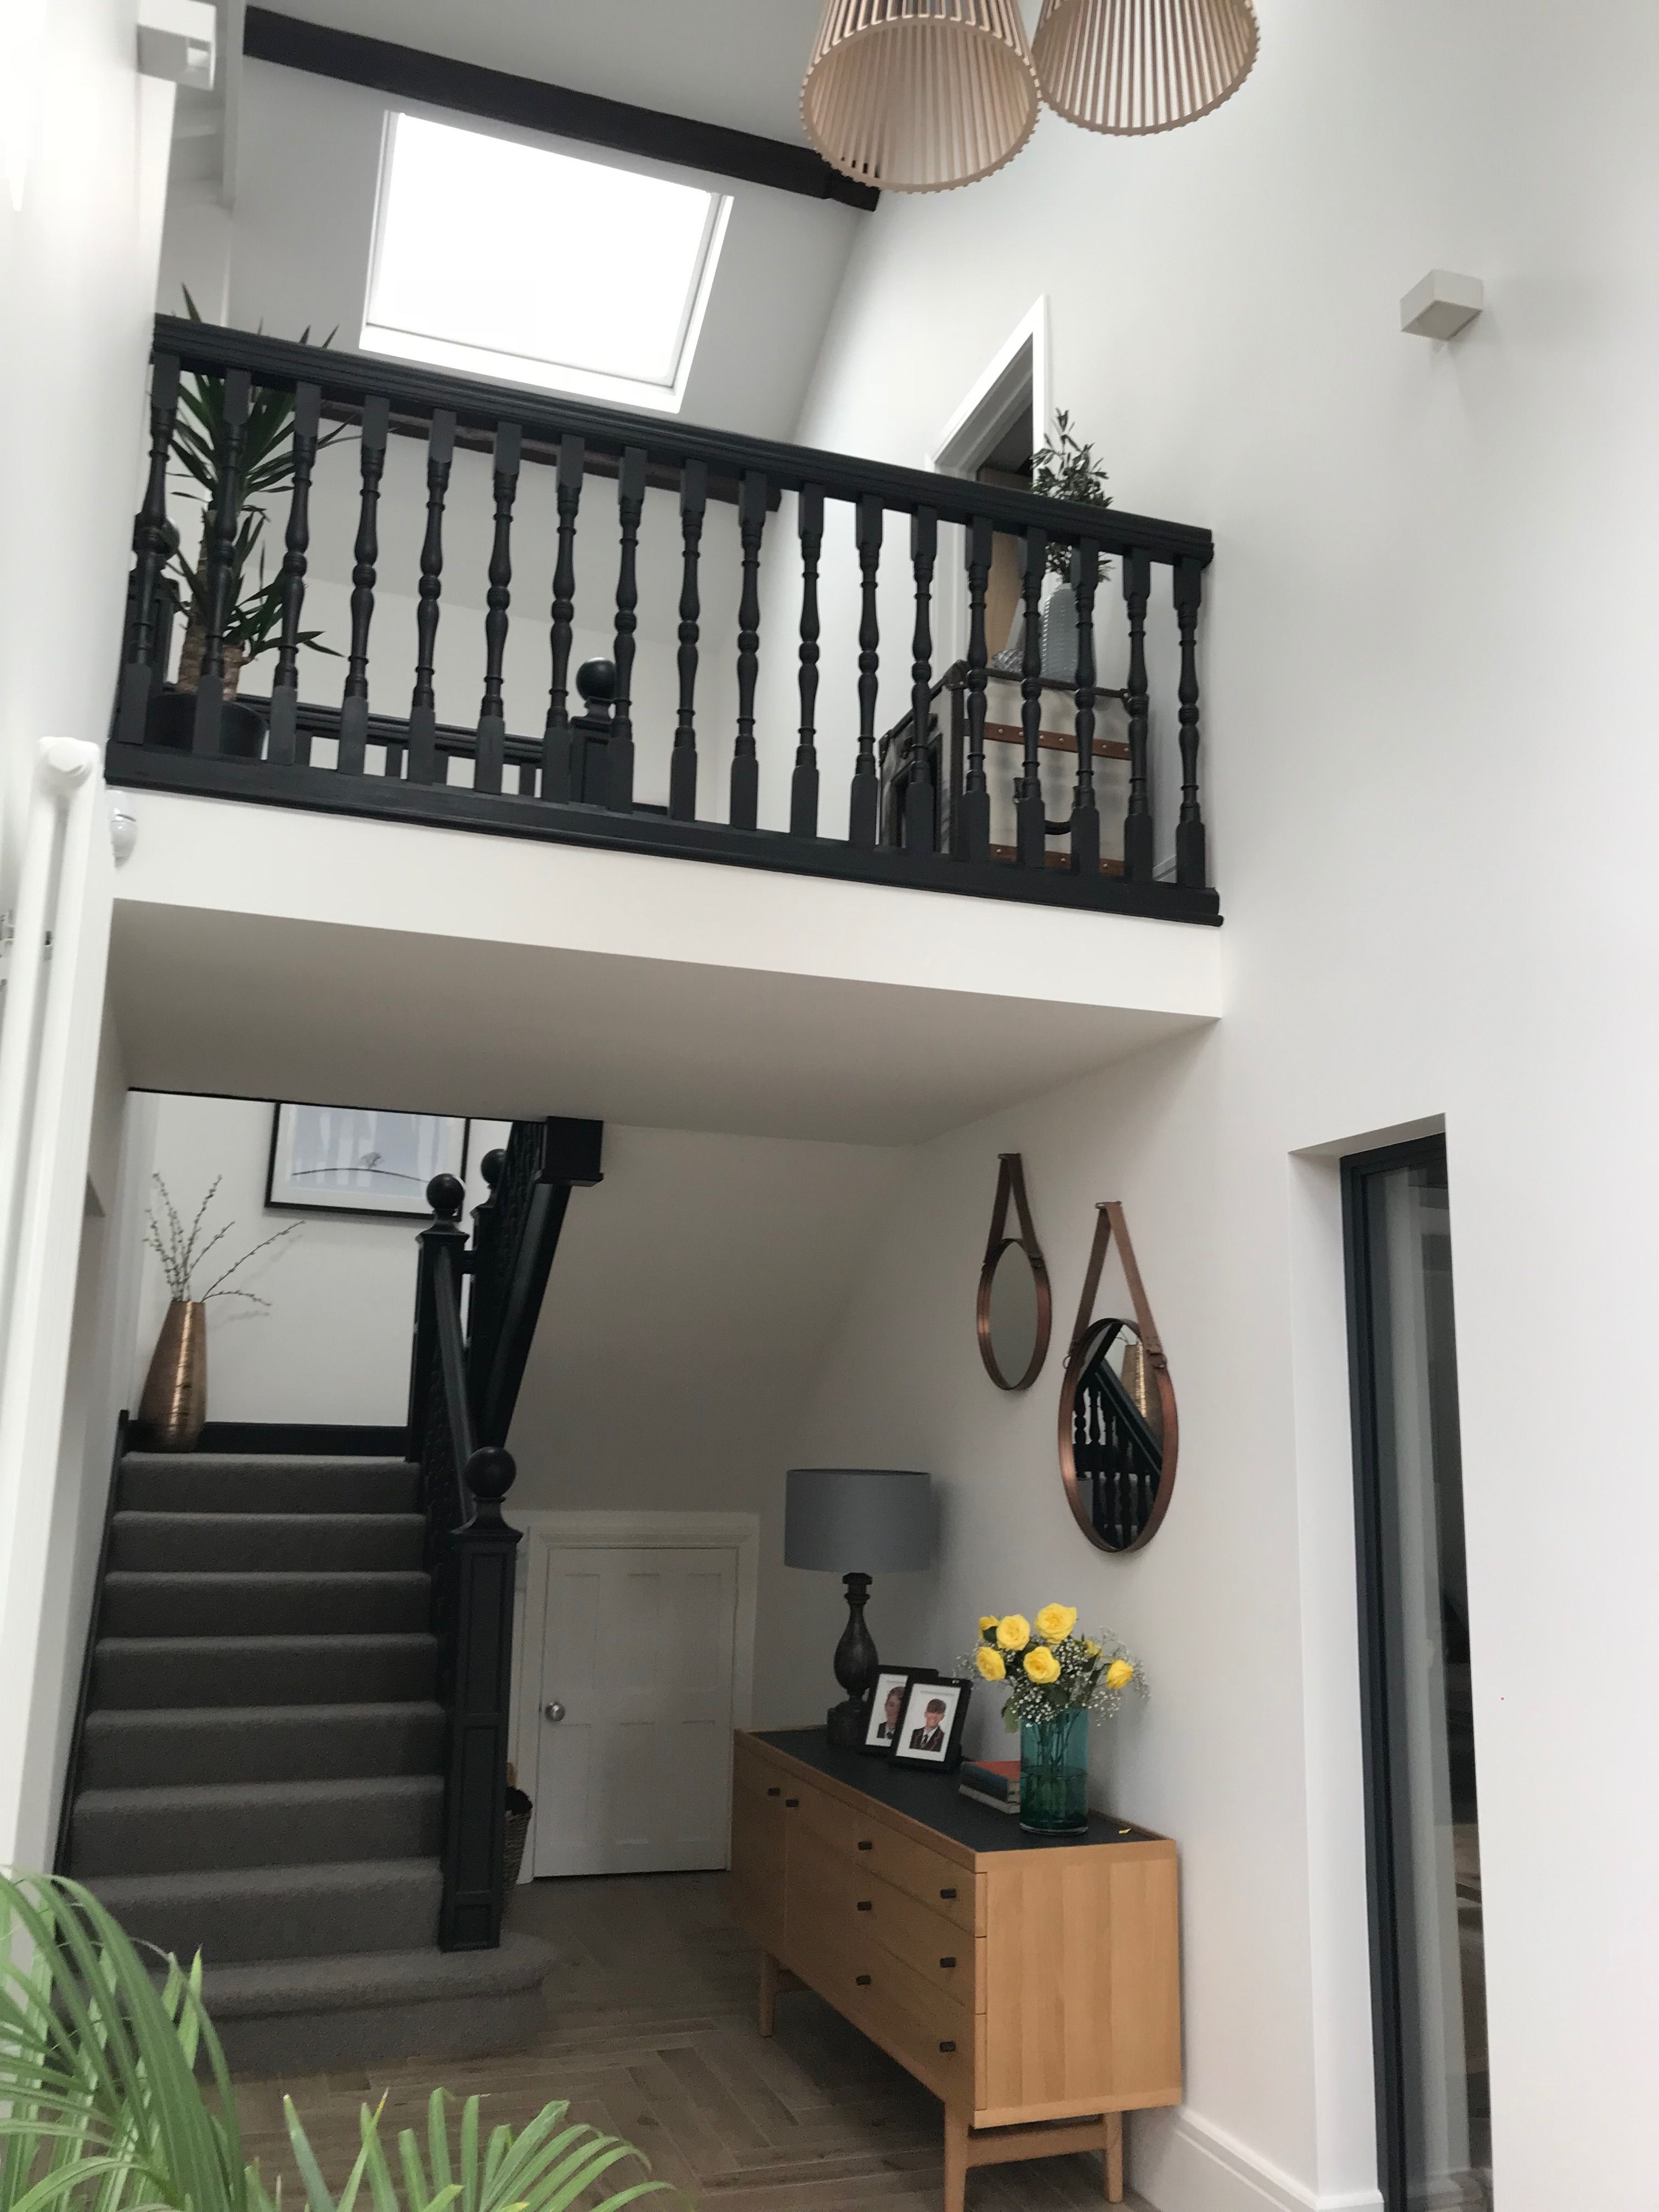 Barn staircase and balcony Staircase, Loft bed